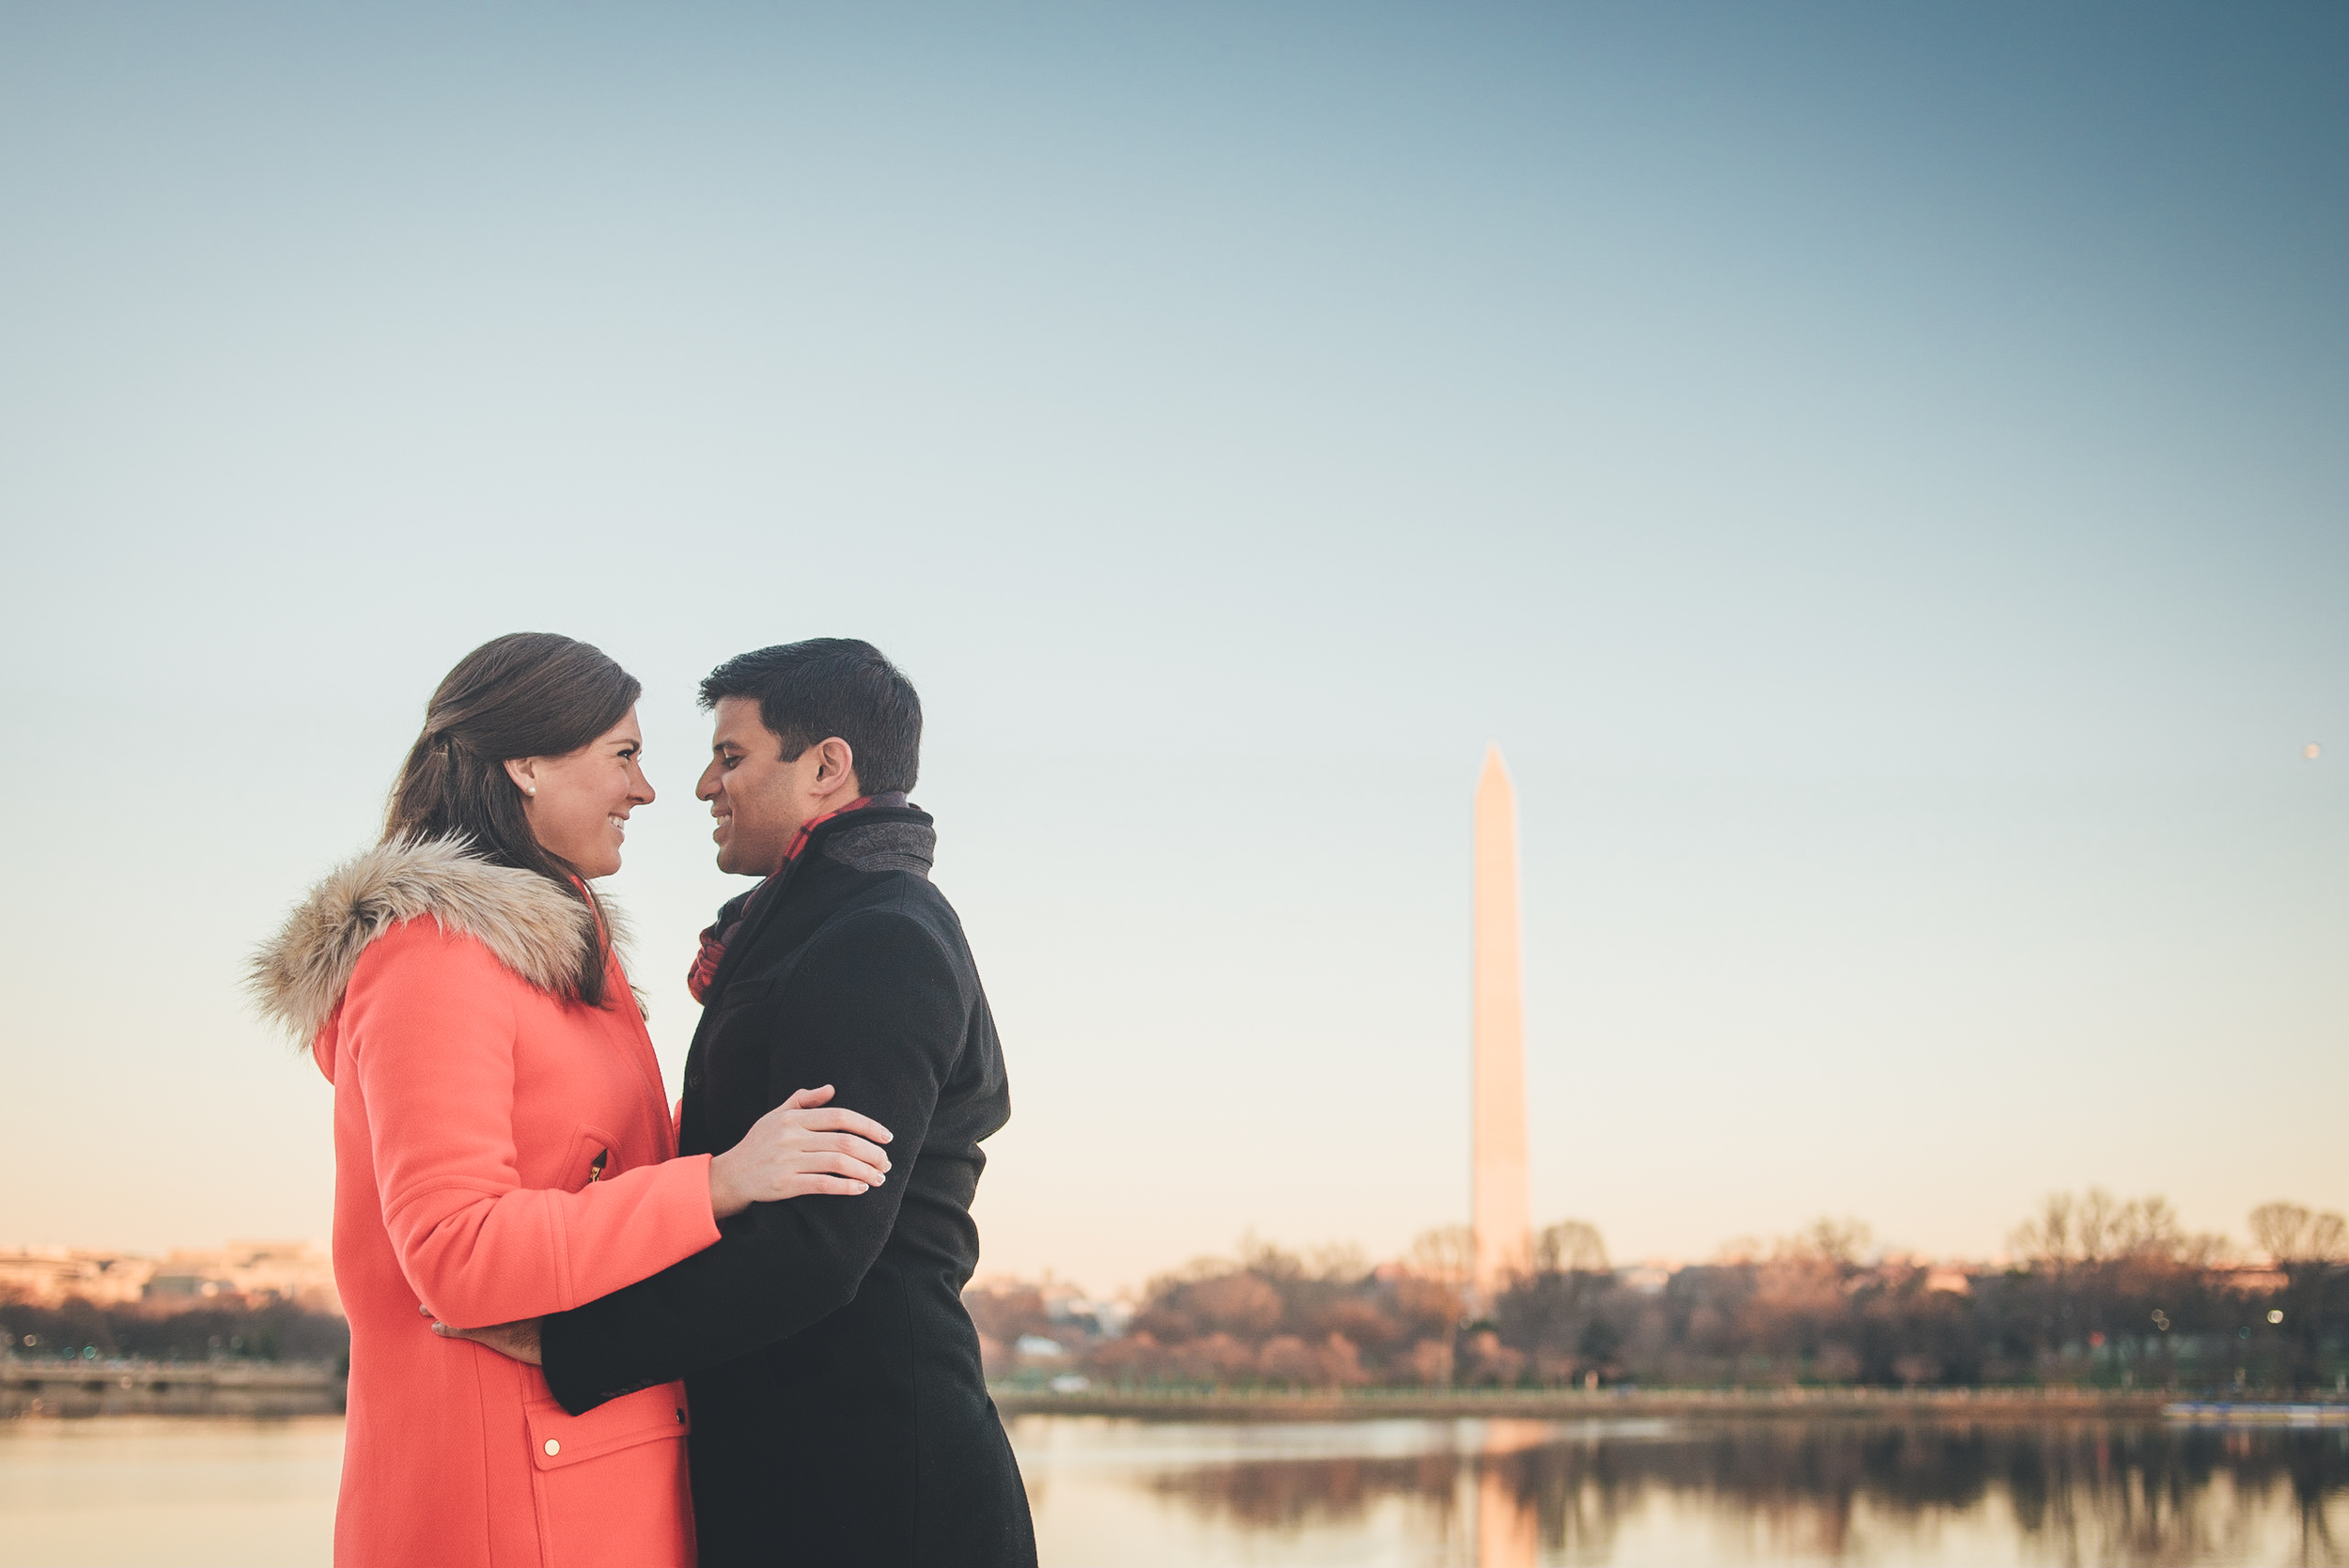 Joe & Christina embrace for an engagement photo on a cold January morning in Washington DC.